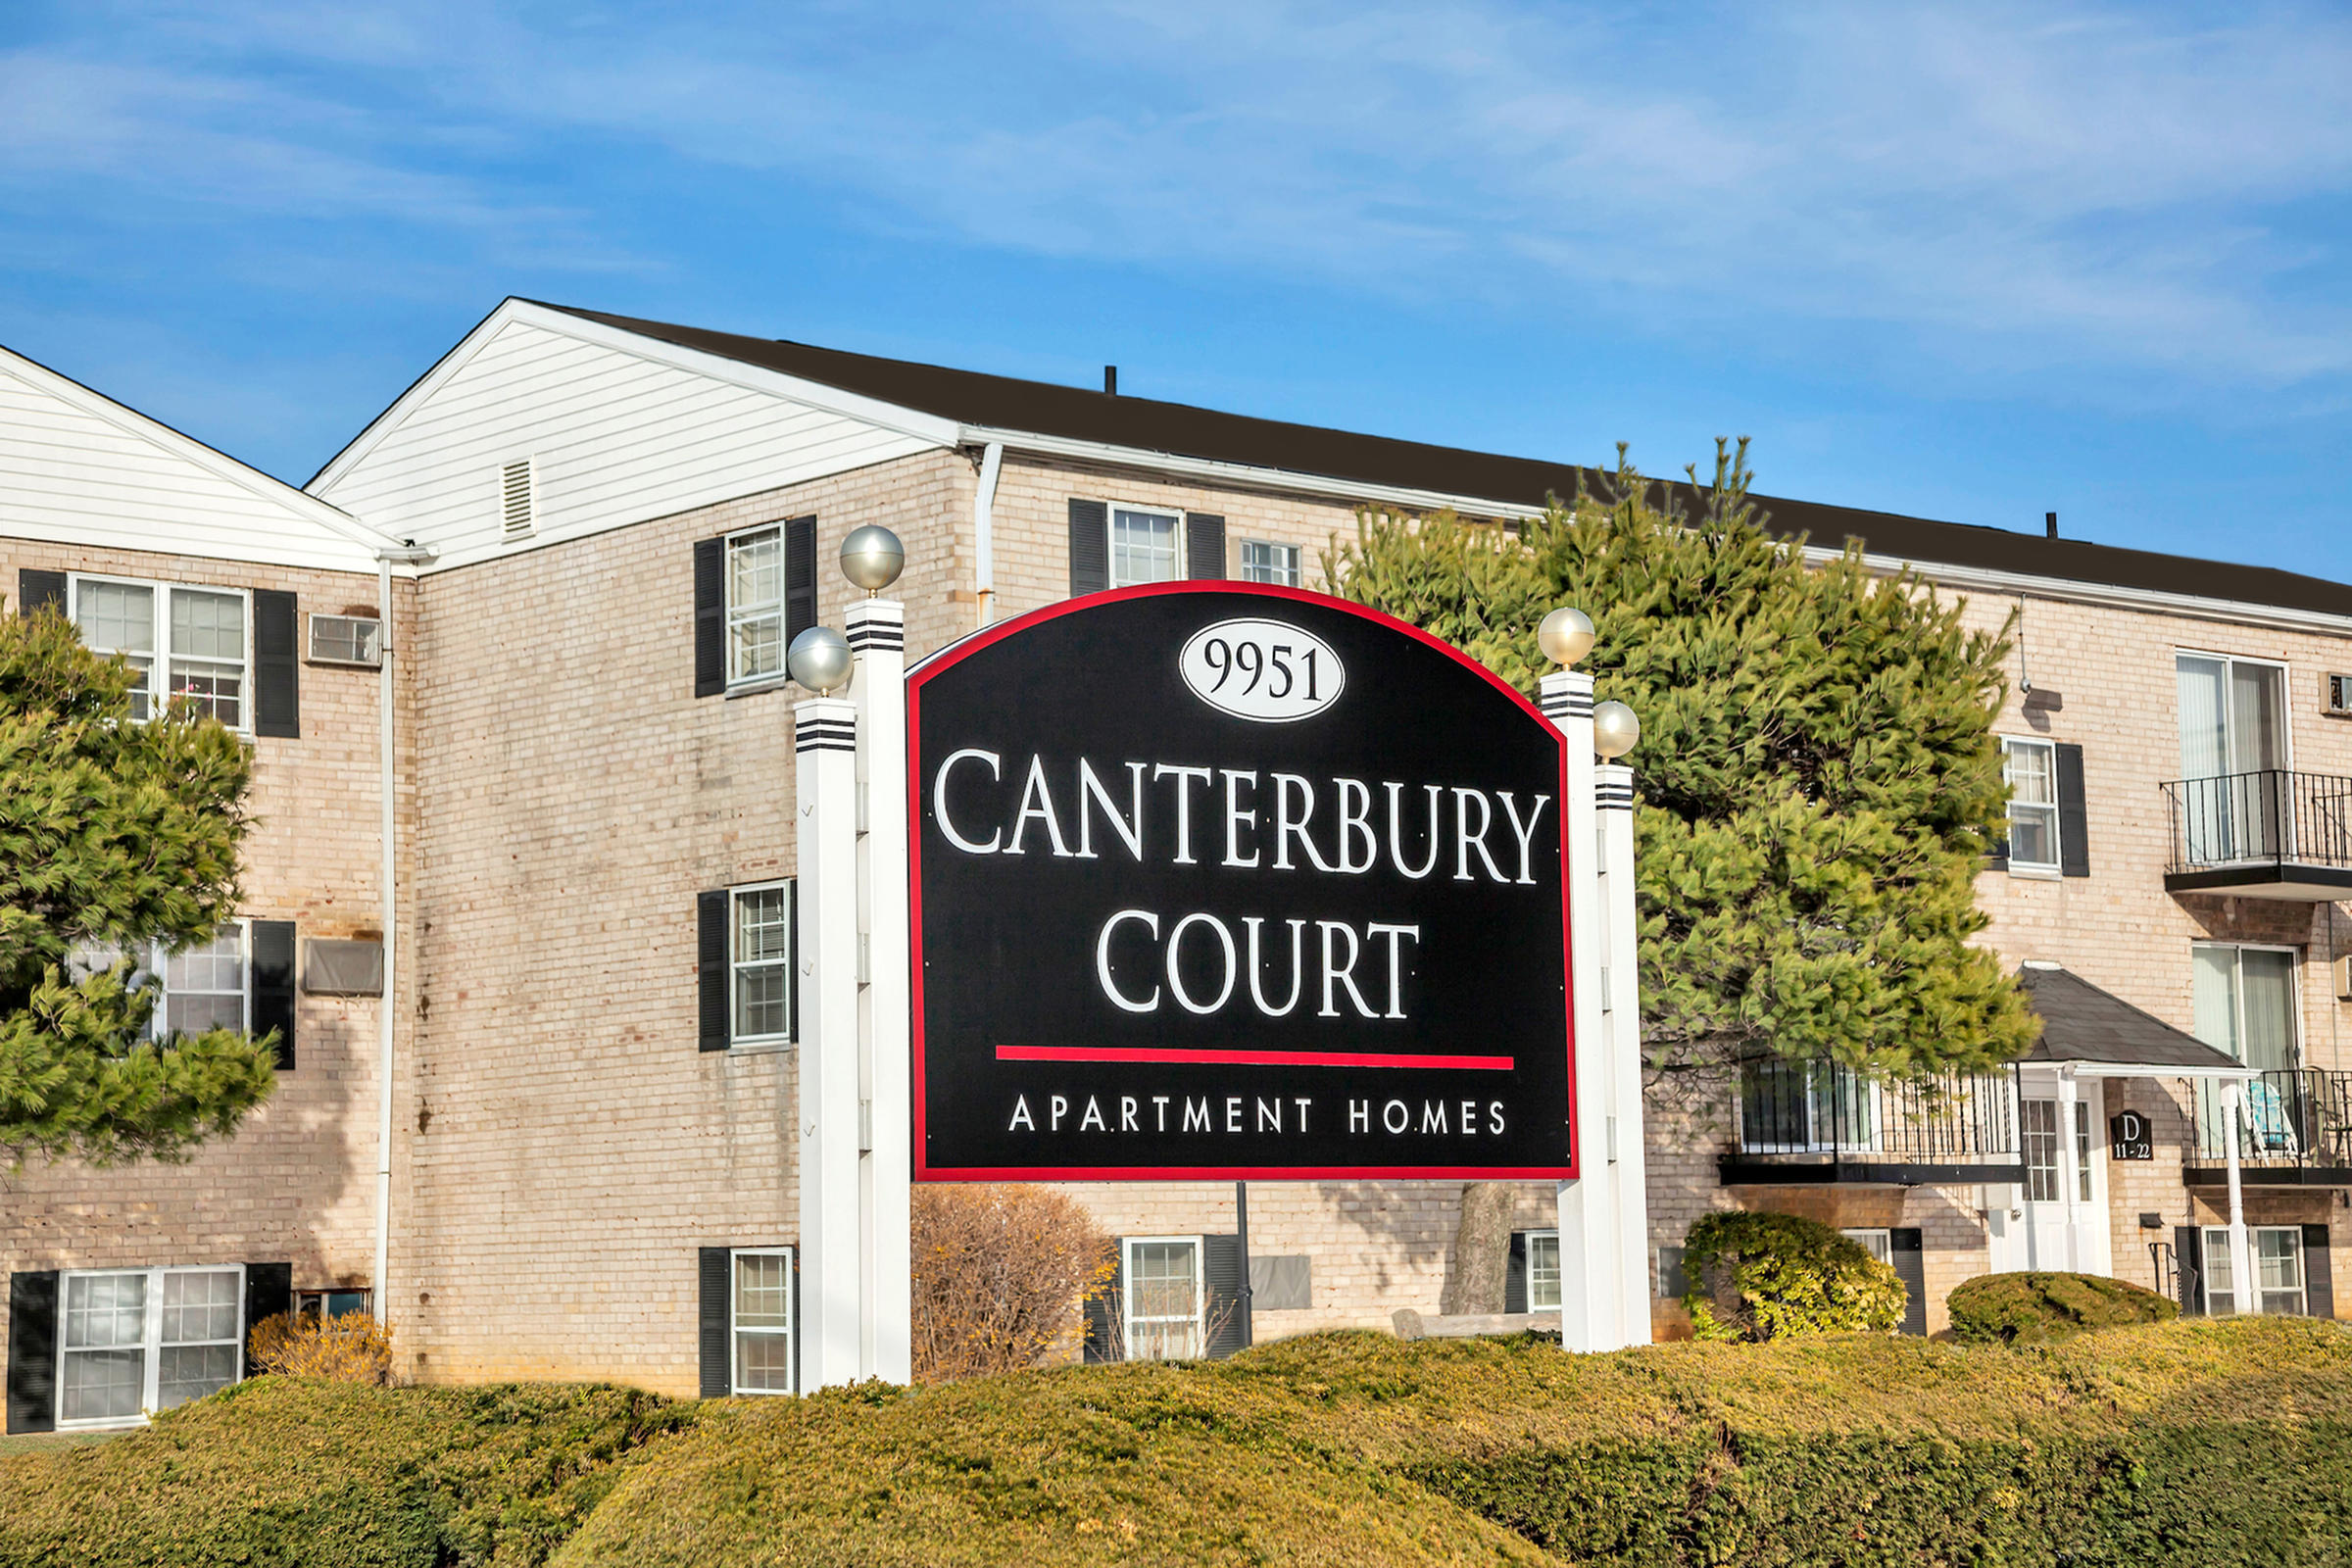 Canterbury Court Apartment Homes